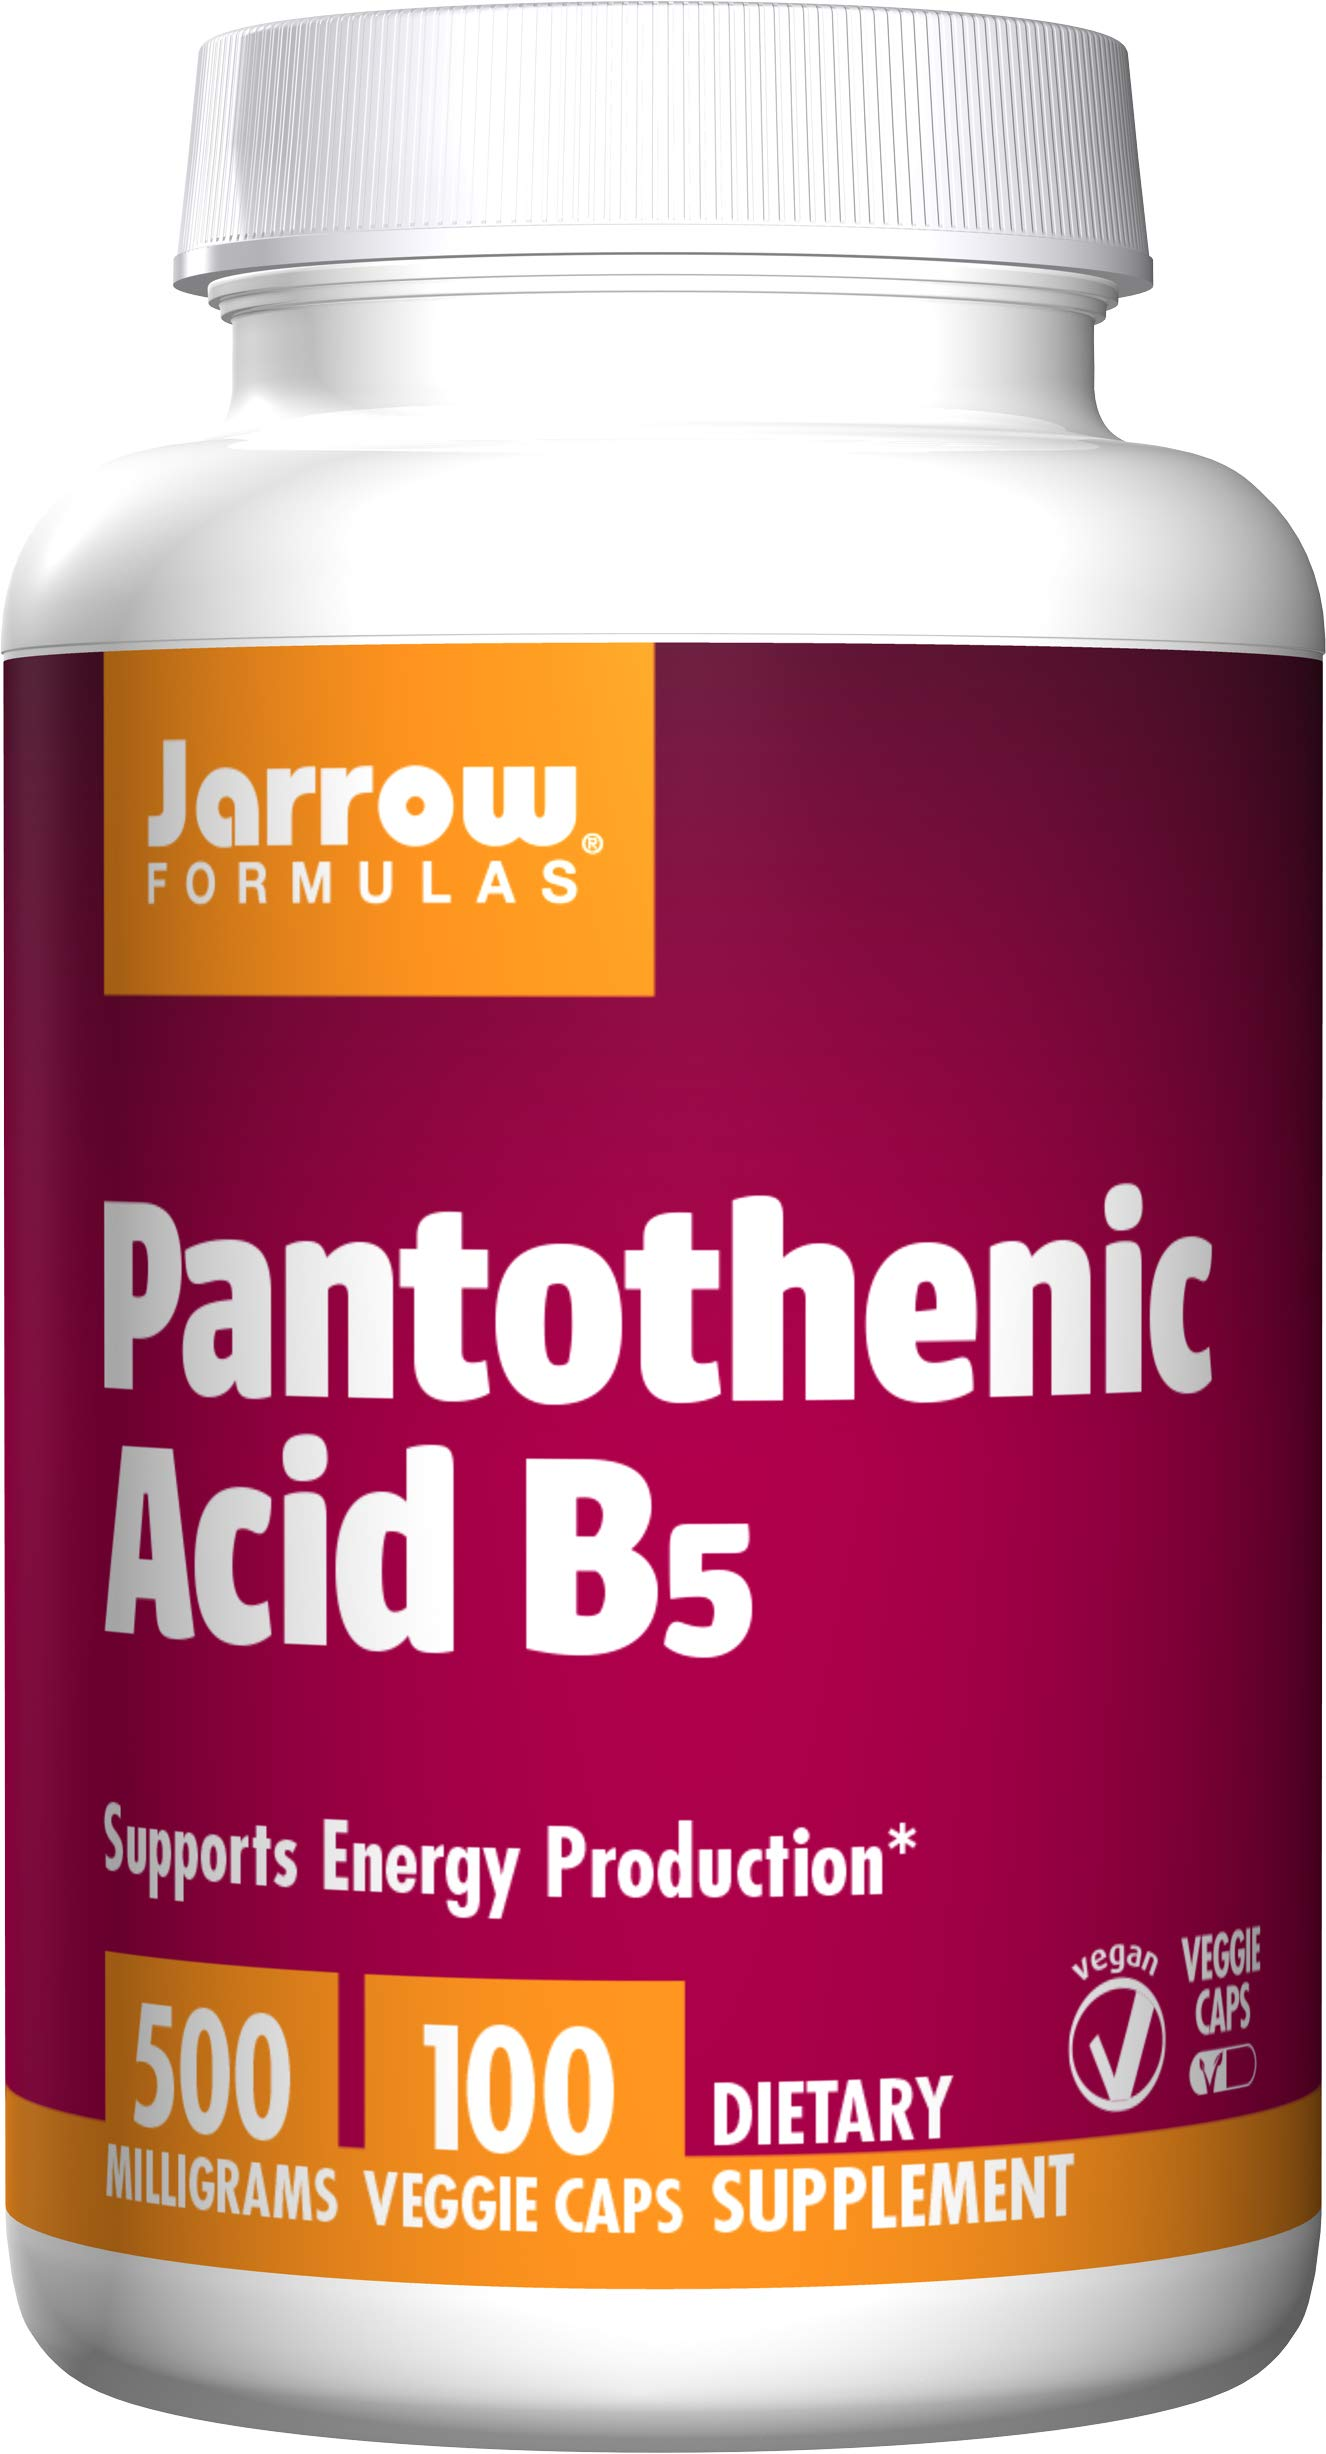 Jarrow Formulas Pantothenic Acid, B5, Supports Energy Production, 500 mg, 100 Capsules (Pack of 3) by Jarrow Formulas